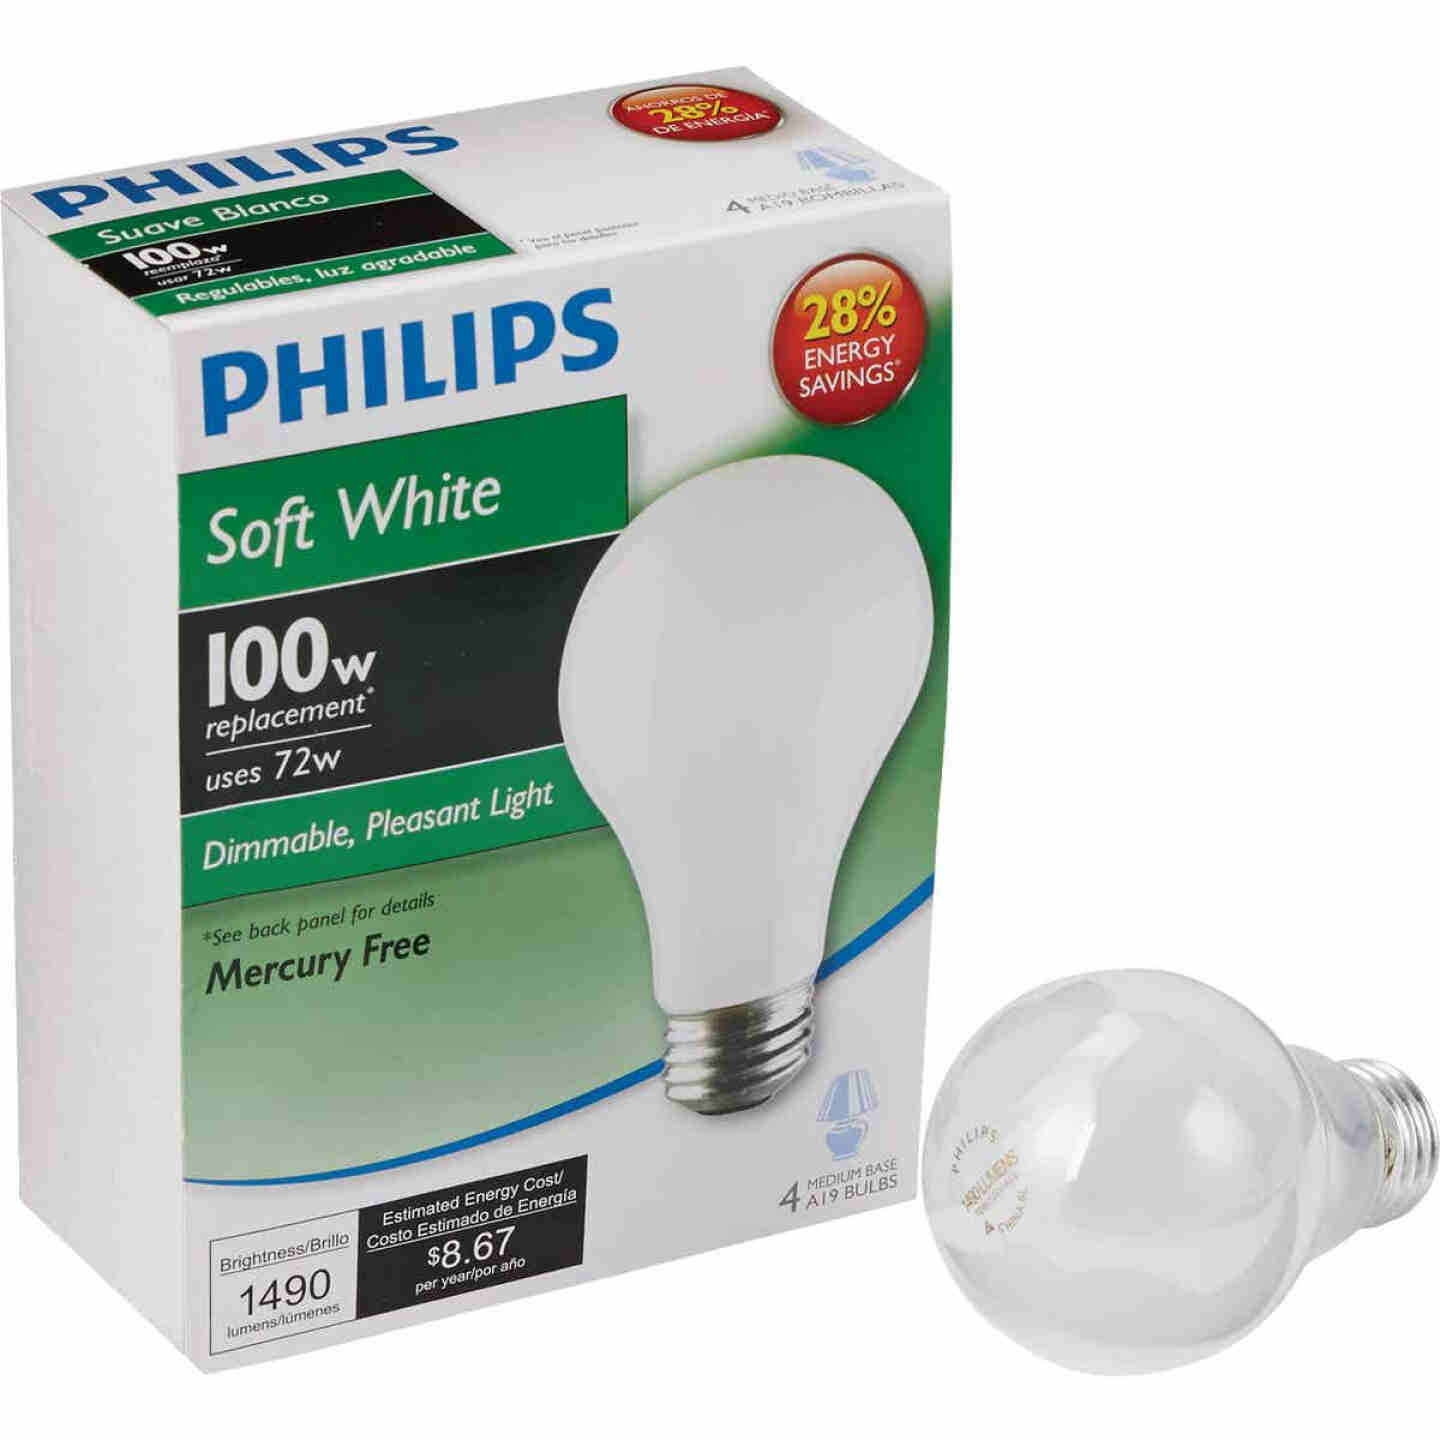 Philips EcoVantage 100W Equivalent Soft White Medium Base A19 Halogen Light Bulb (4-Pack) Image 1